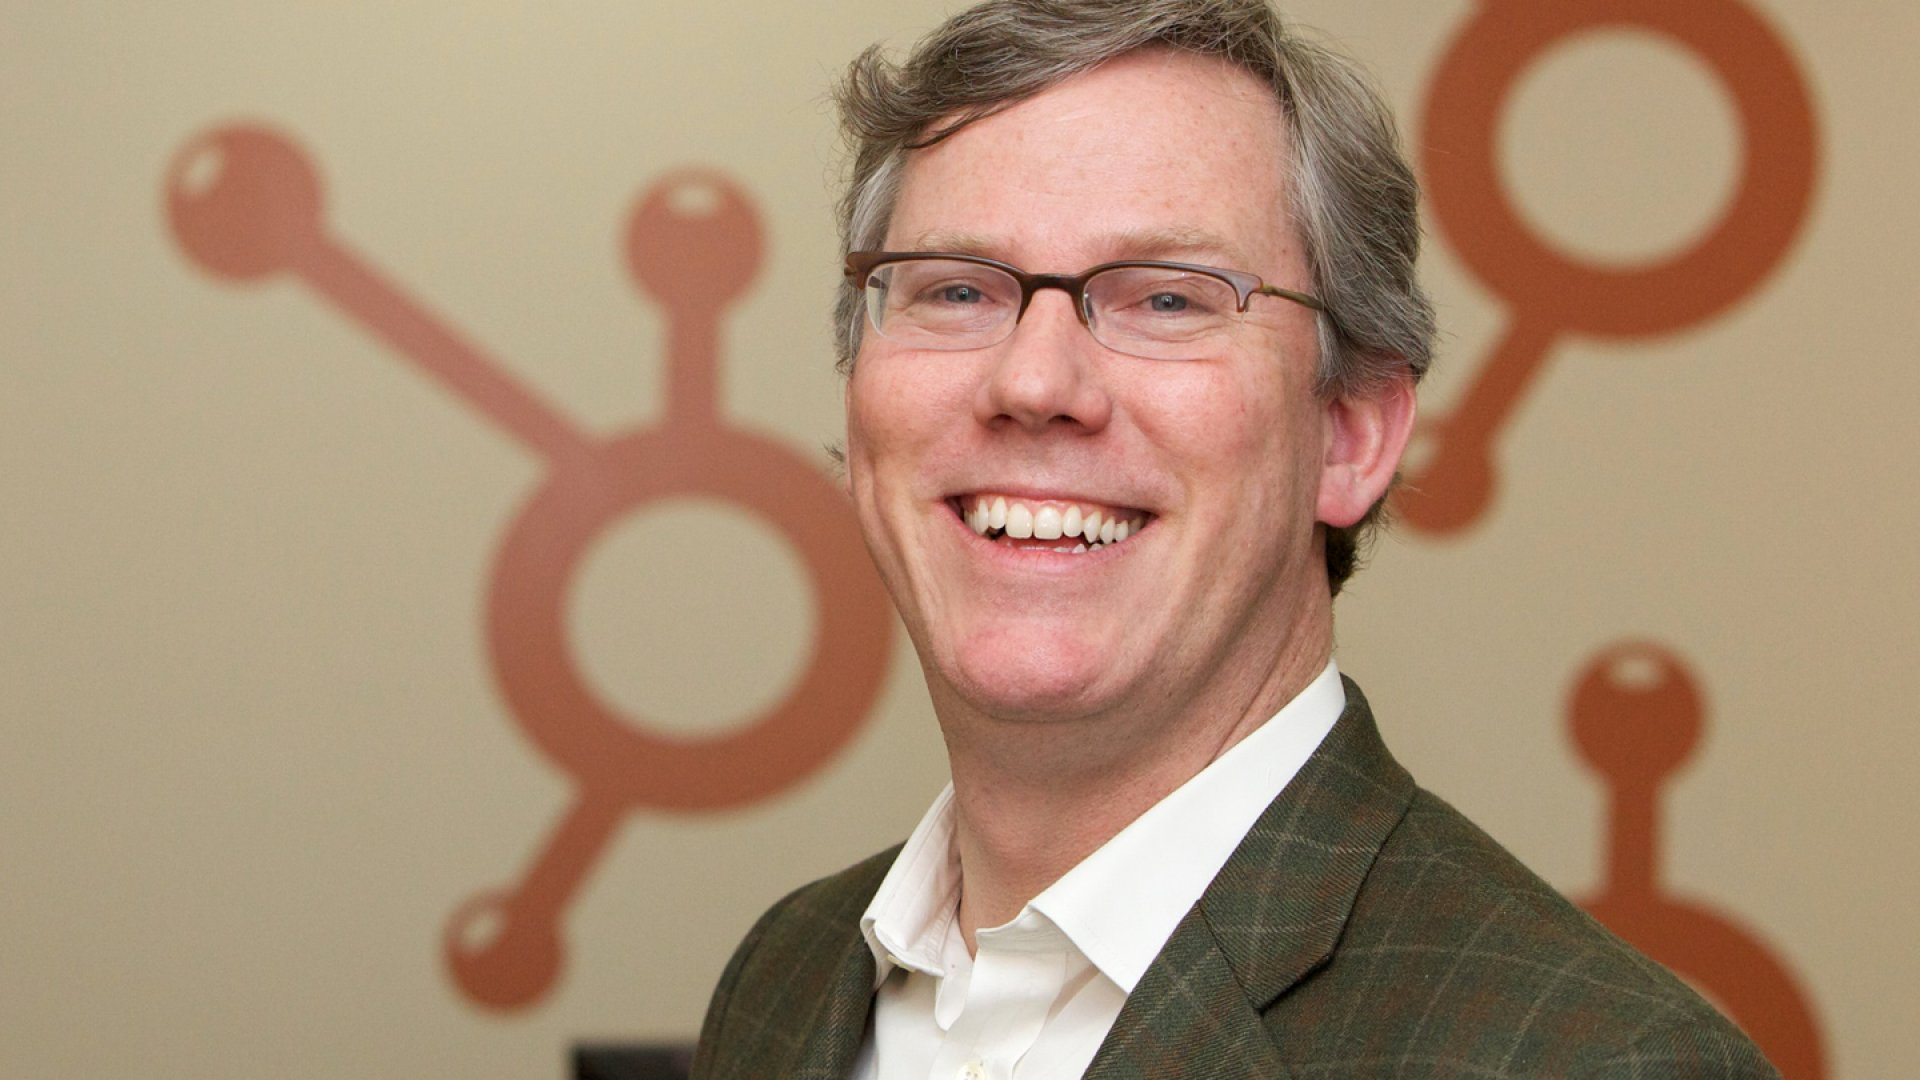 HubSpot CEO: How to Build a Moat Around Your Business